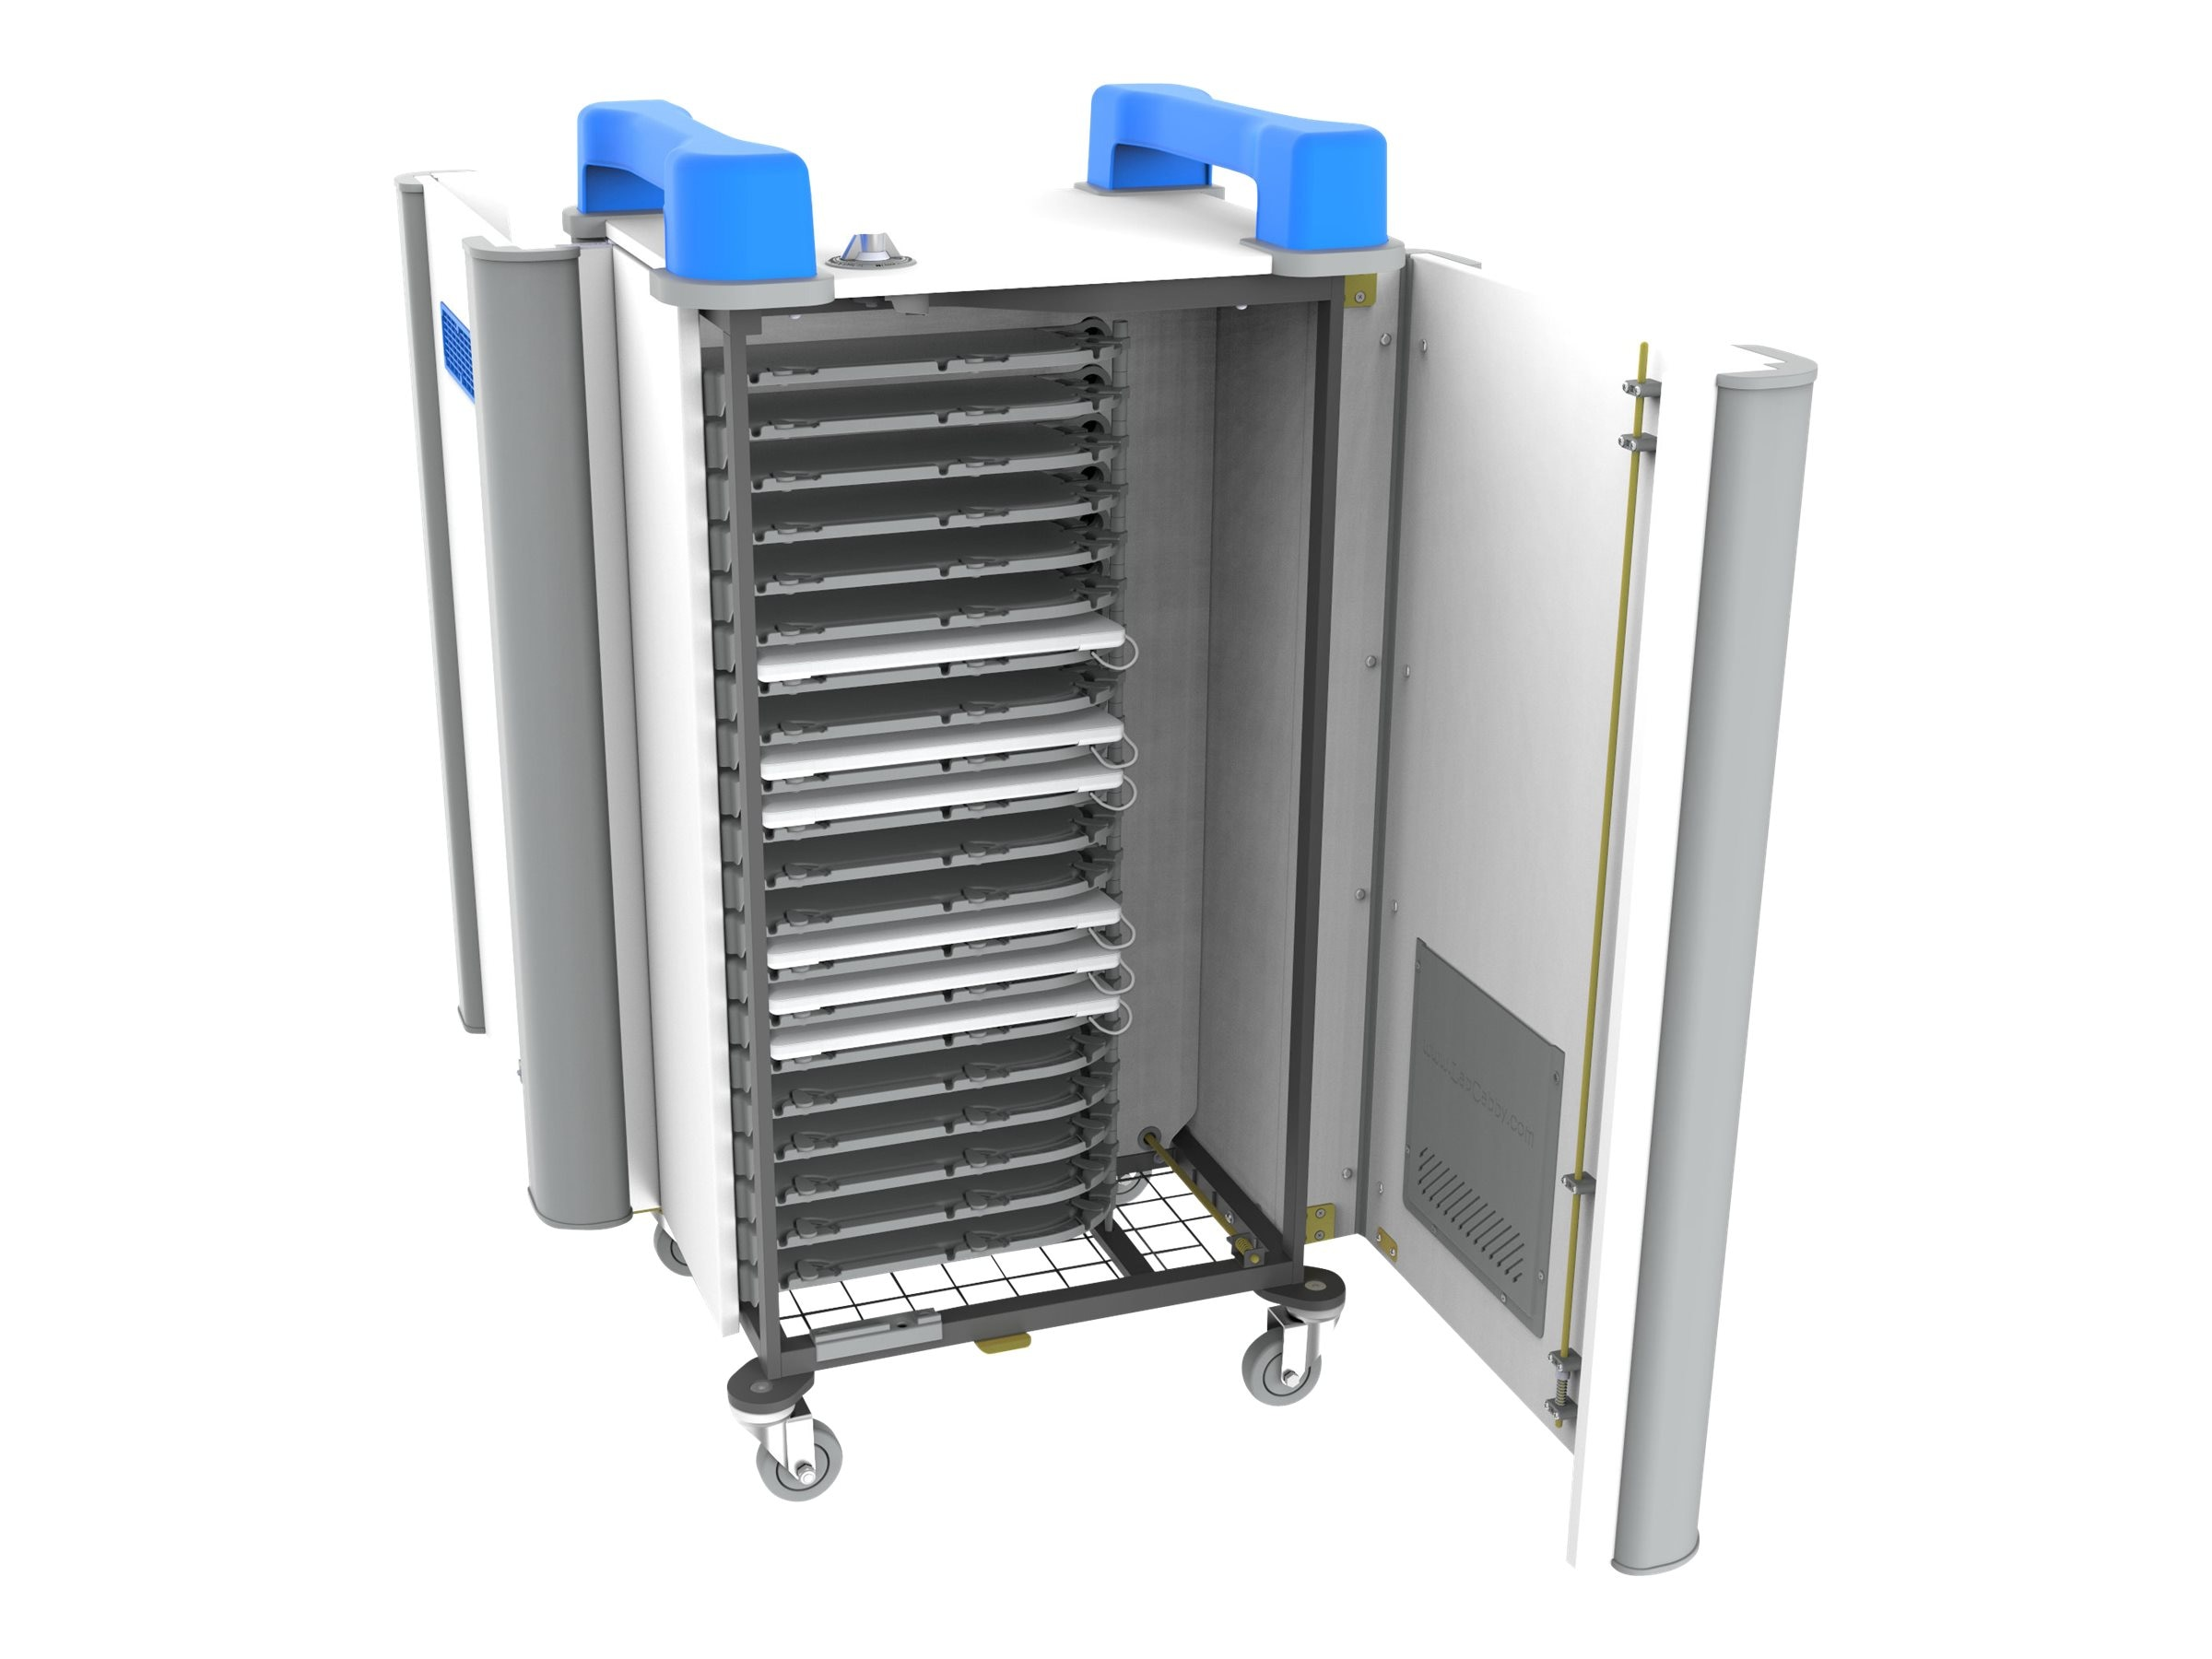 LapCabby 20h 20-Unit Universal Device Cart, Blue